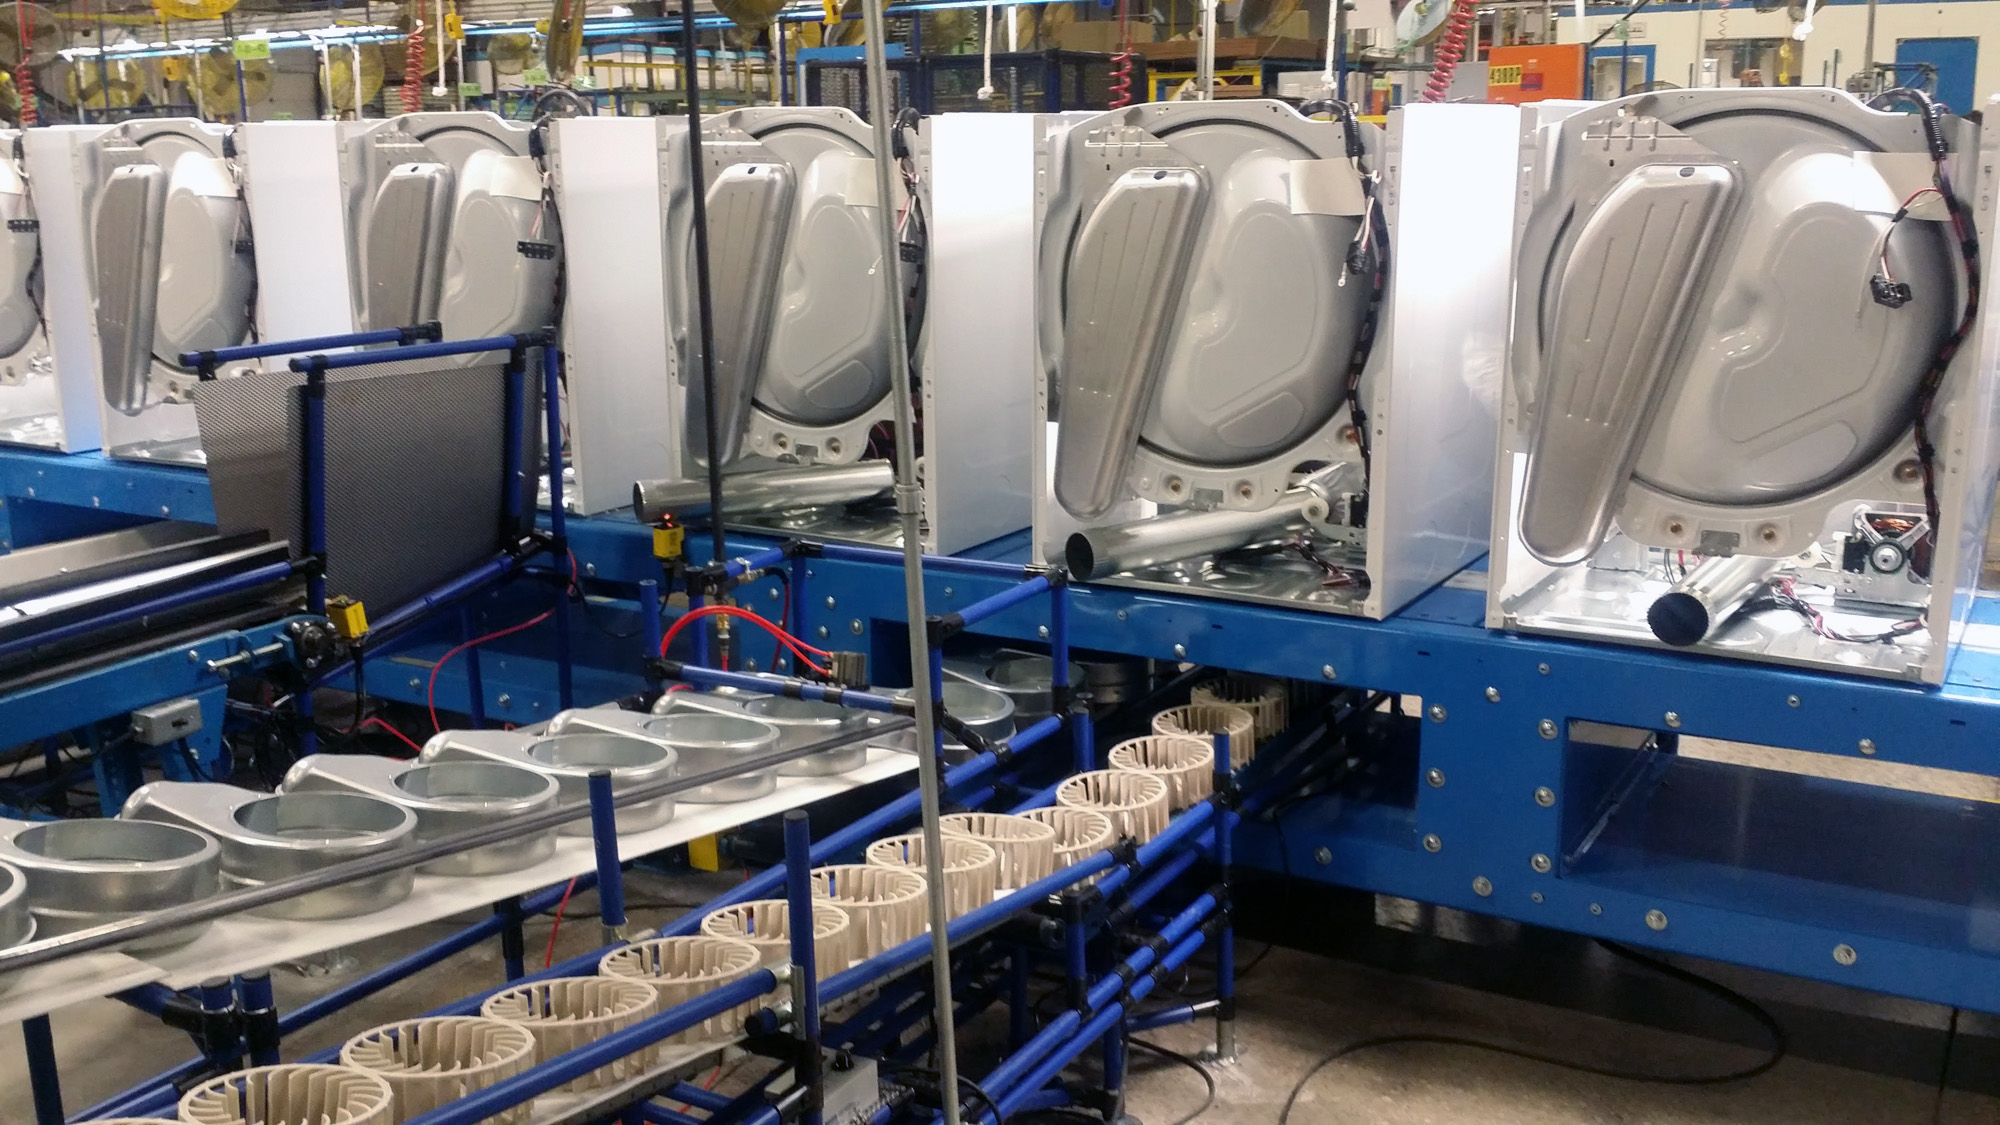 Dryer assembly line.  Slat with parts flow through deisgn